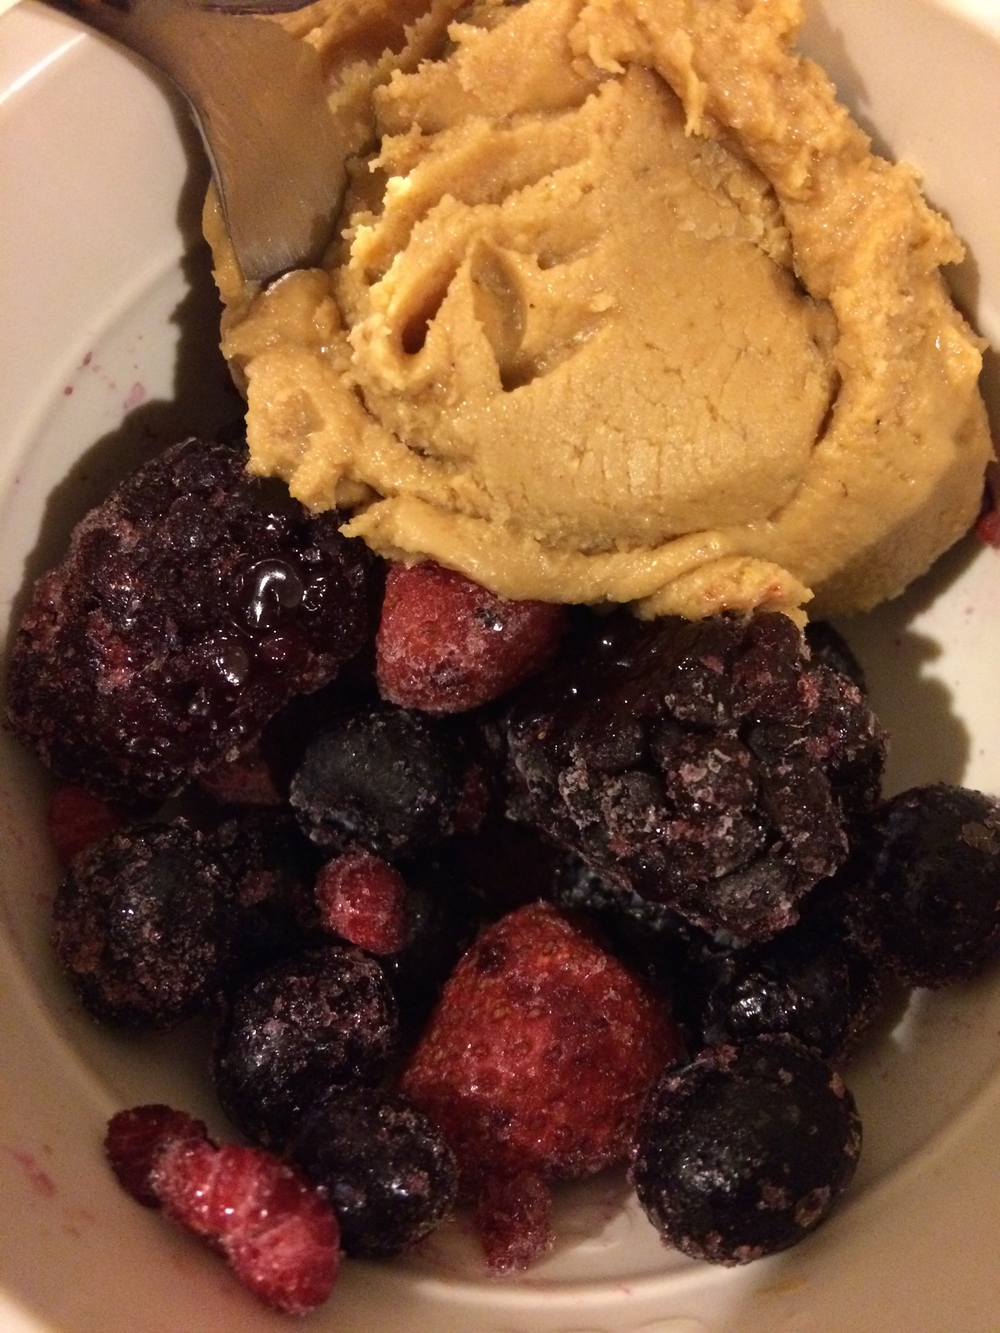 frozen berries + peanut butter --> no bliss point here, just pure satisfaction :)